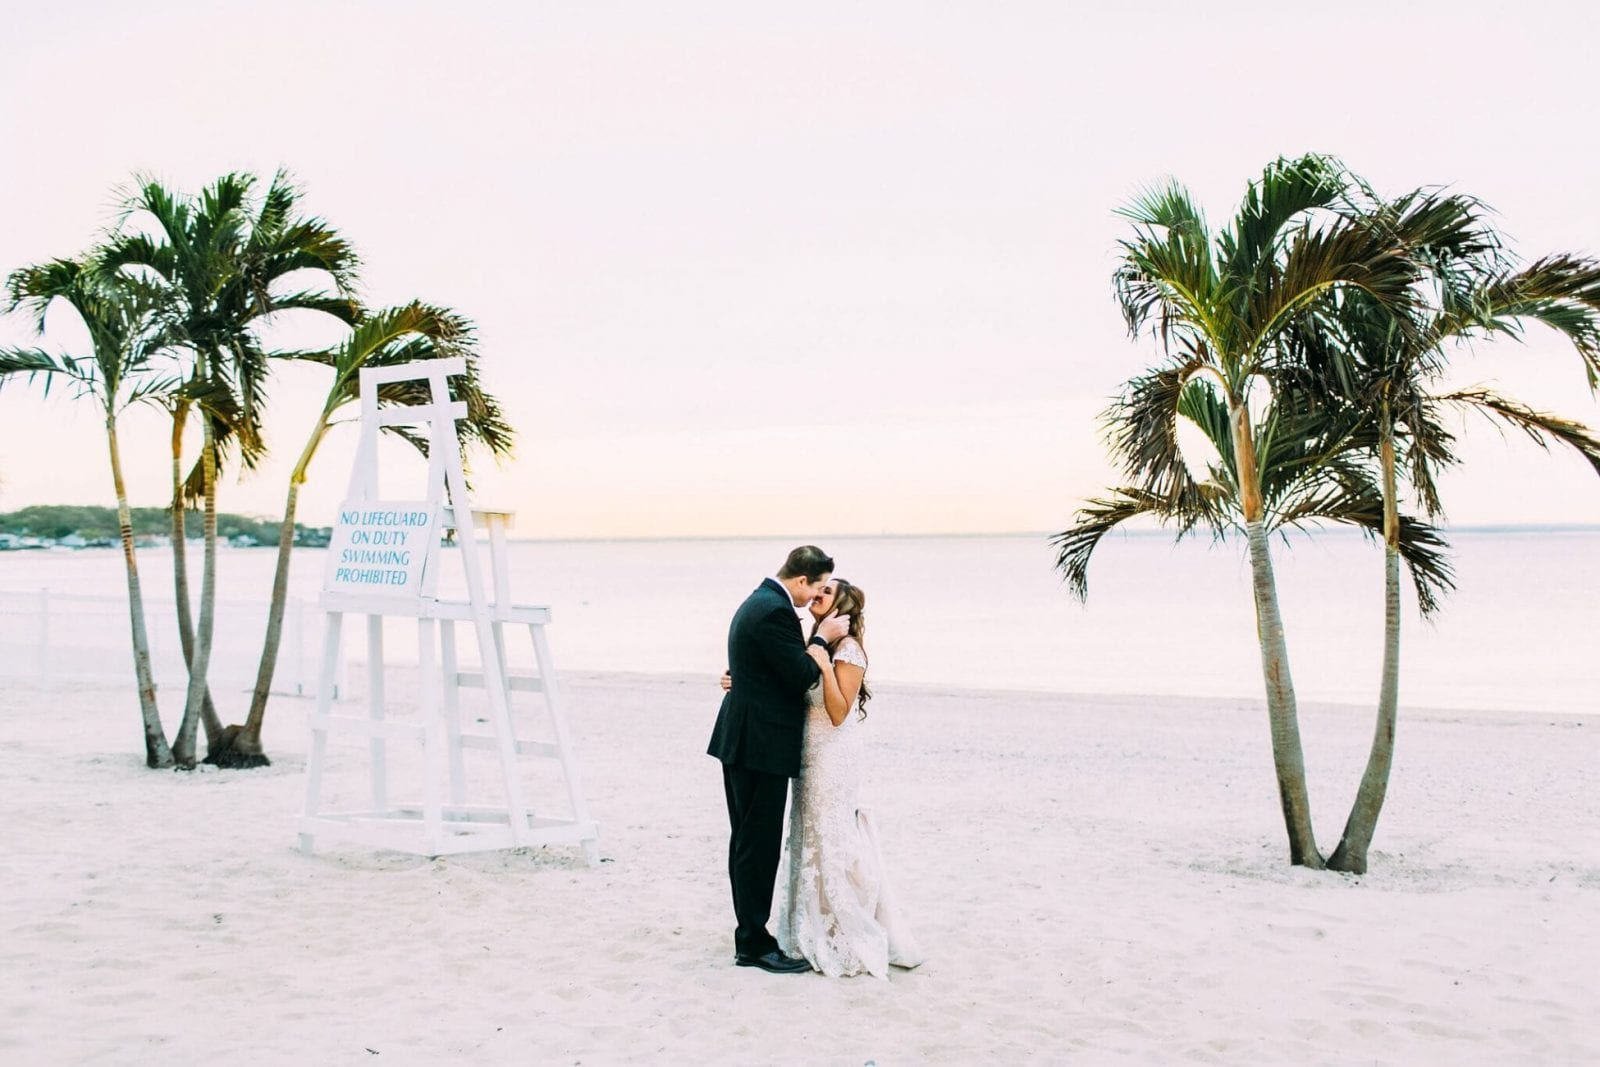 Bride and groom kissing in between two groups of palm trees on the beach of the Crescent Beach Club with water views